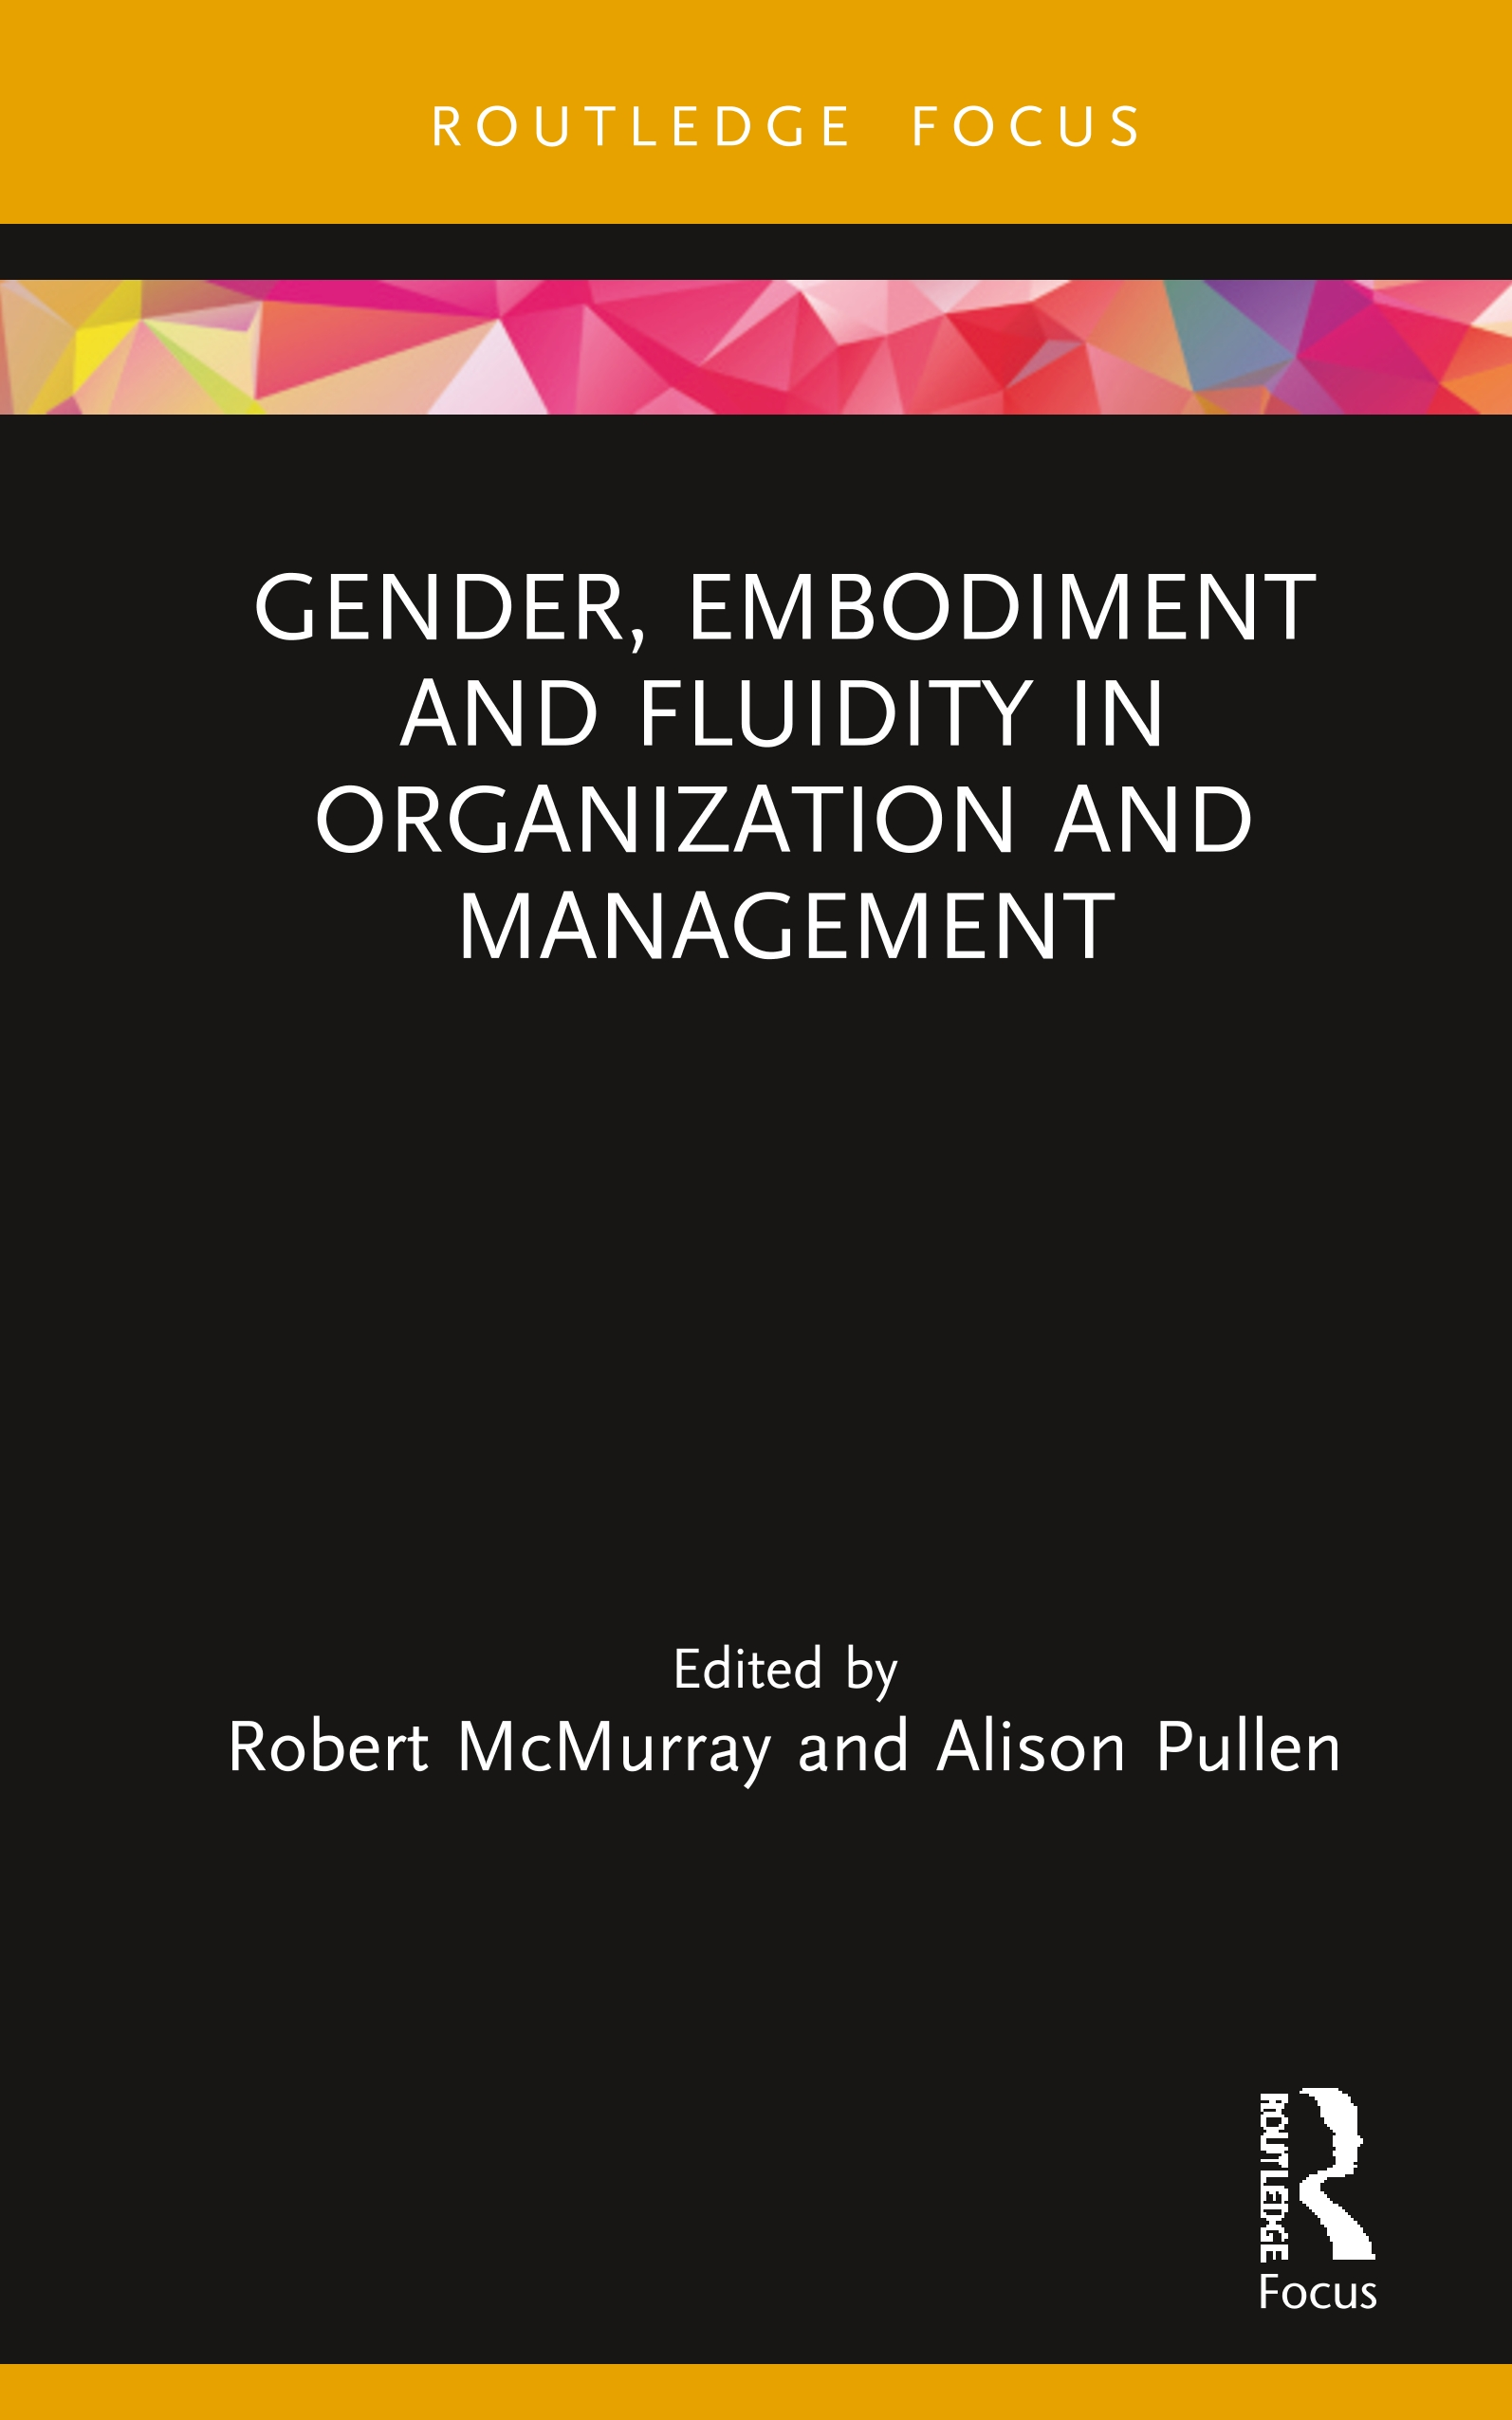 Gender, Embodiment and Fluidity in Organization and Management book cover